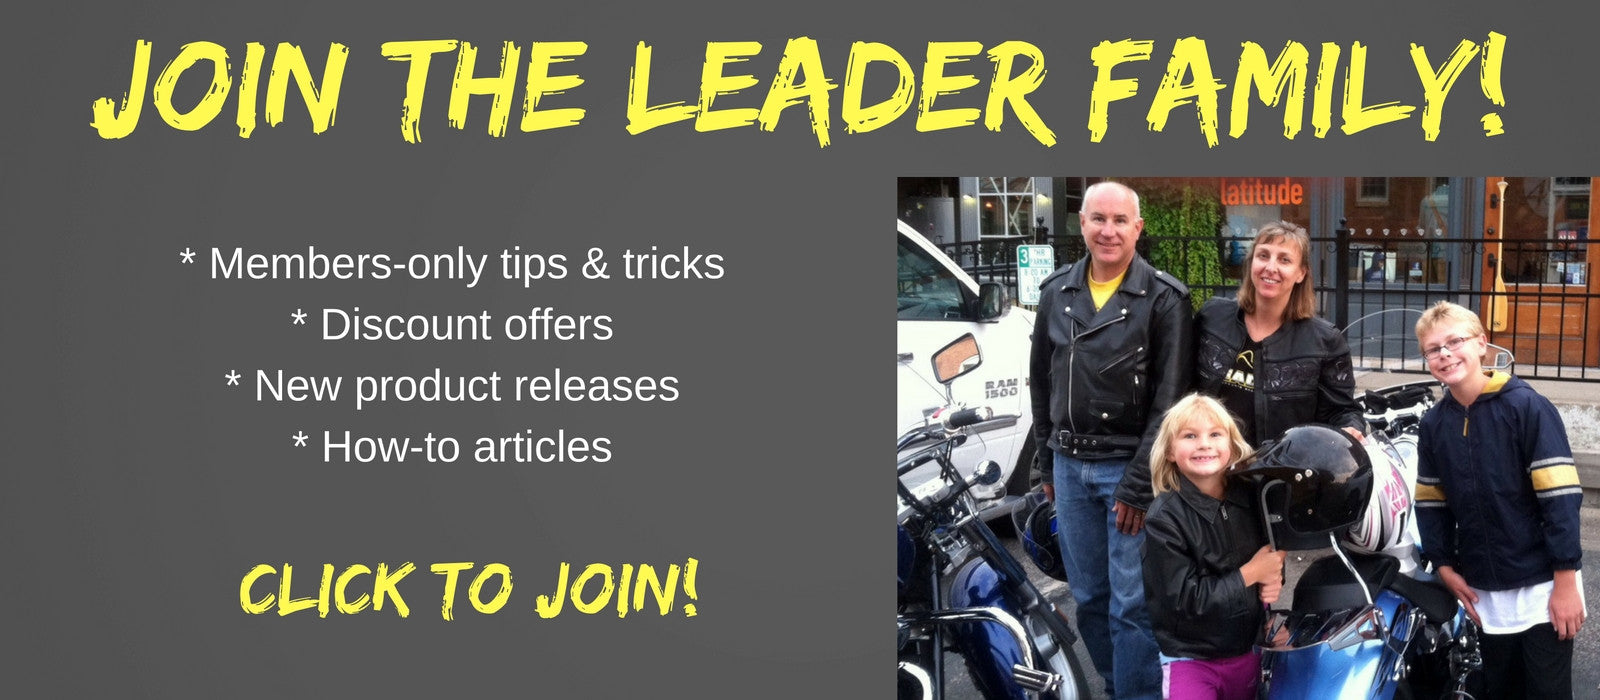 Join the Leader Family